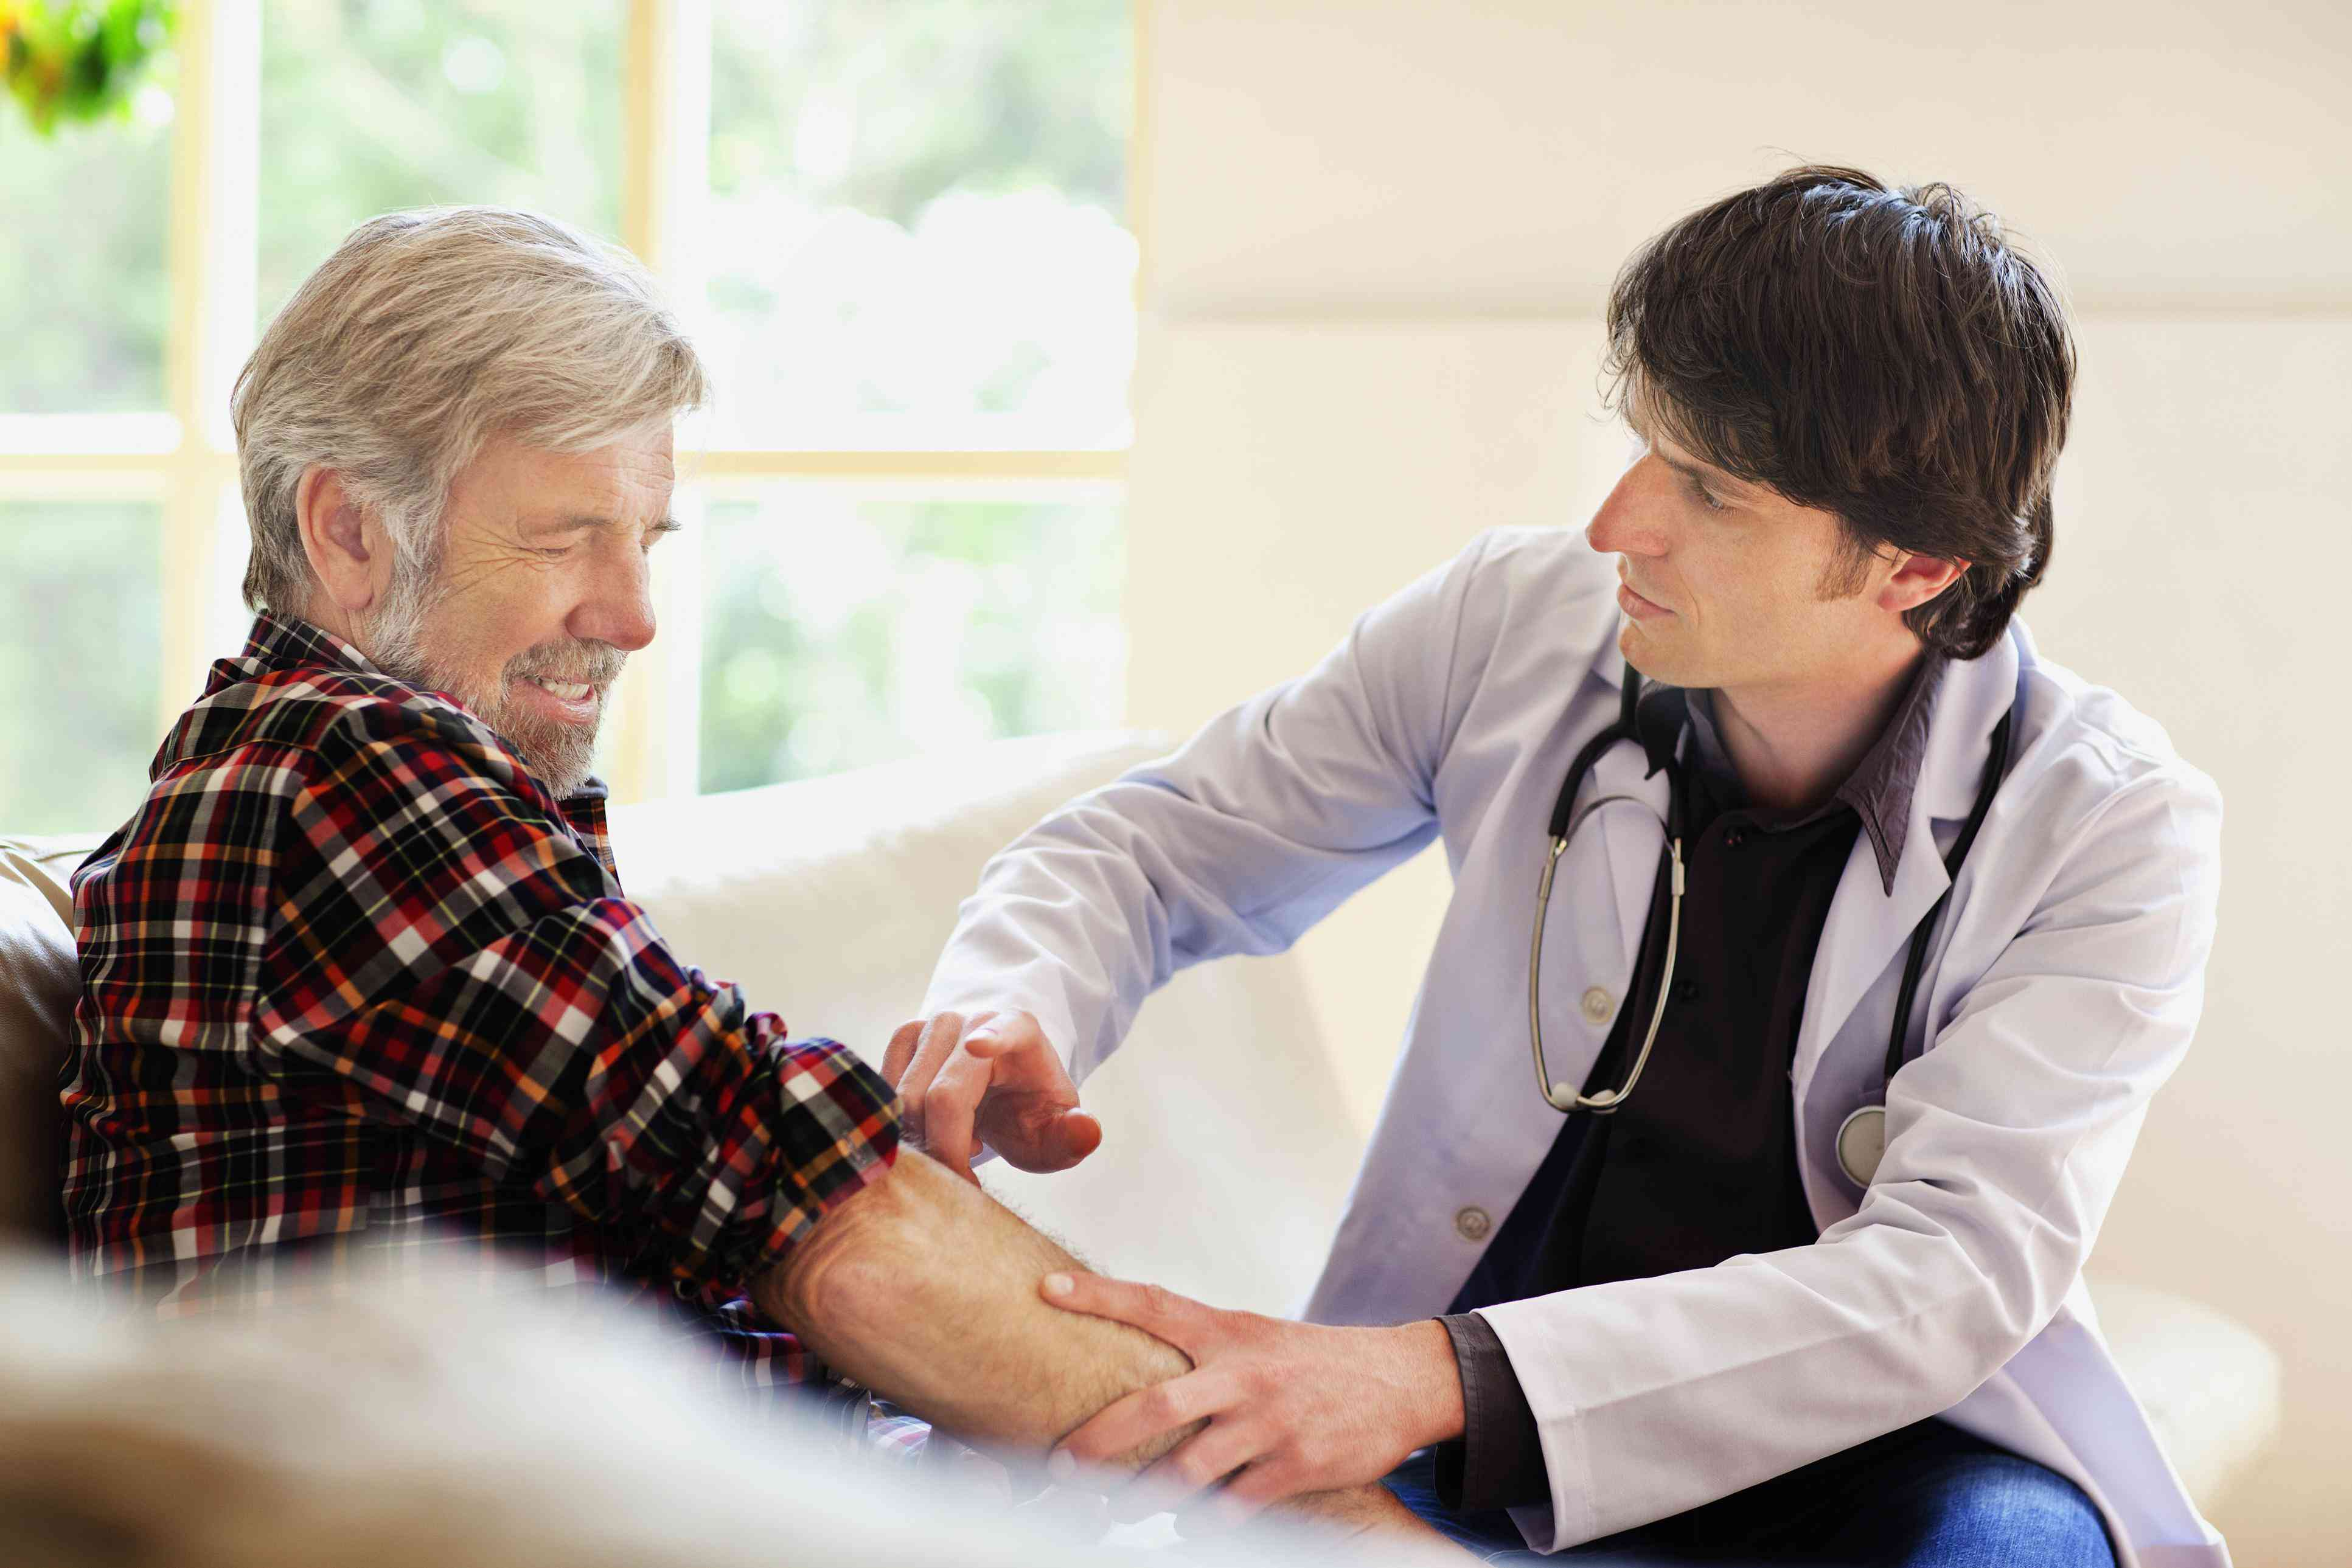 A doctor examining his patient